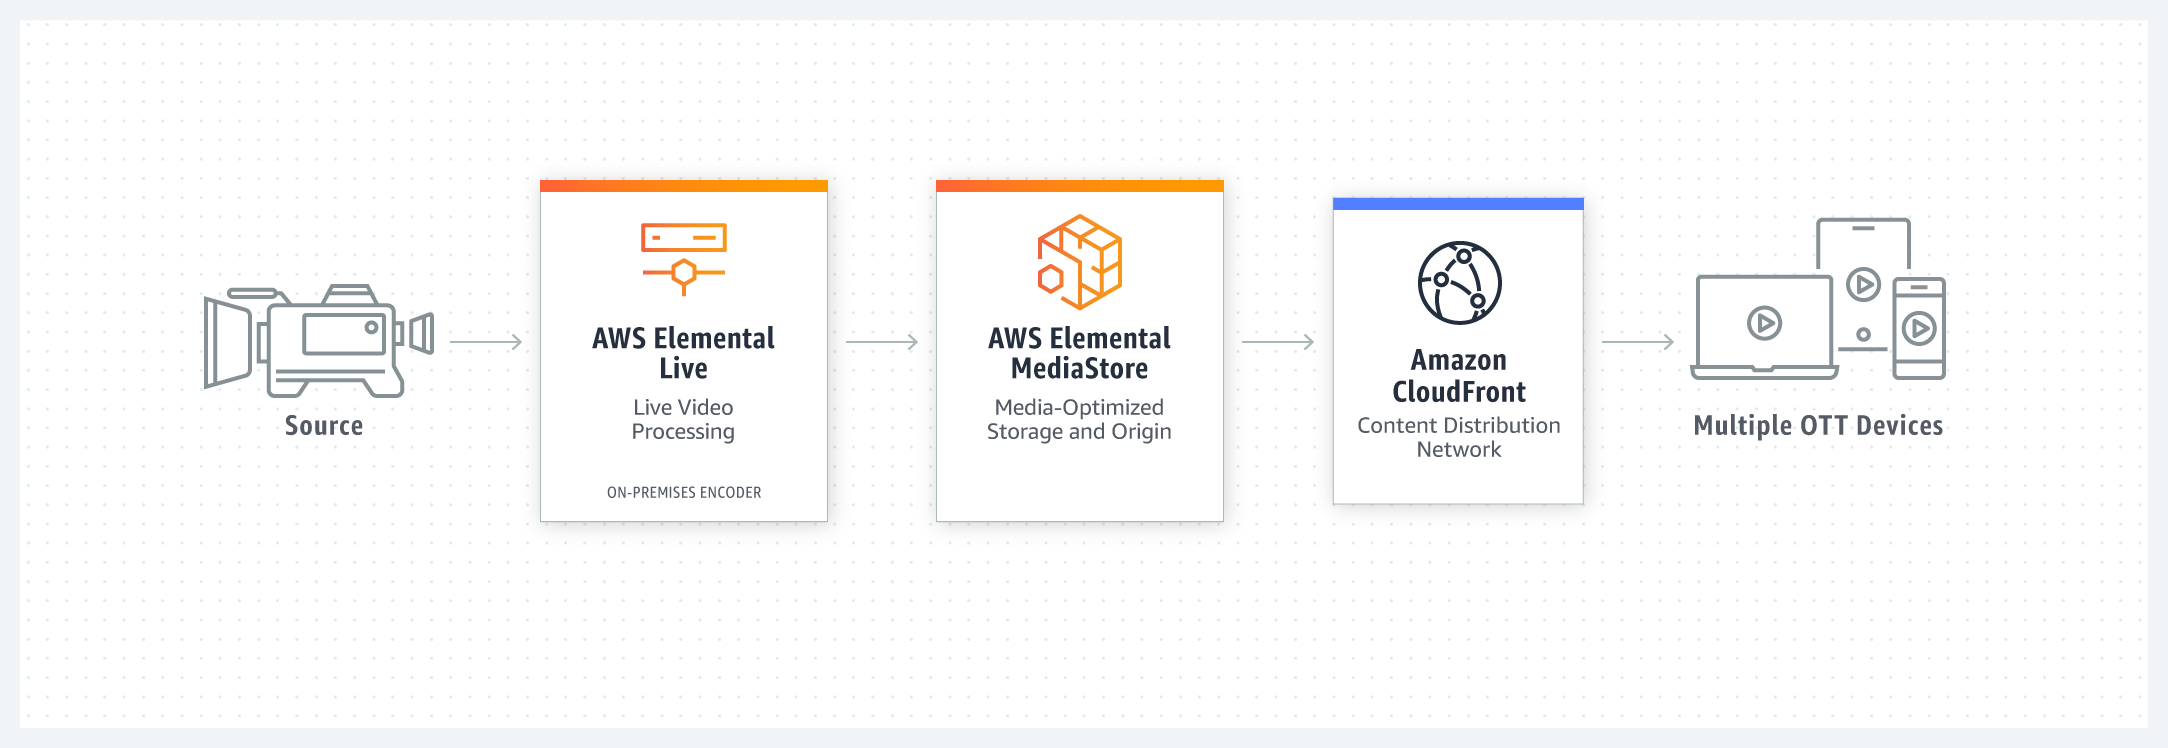 product-page-diagram_AWS_Elemental_r06_LIVE_MEDIASTORE_@2x